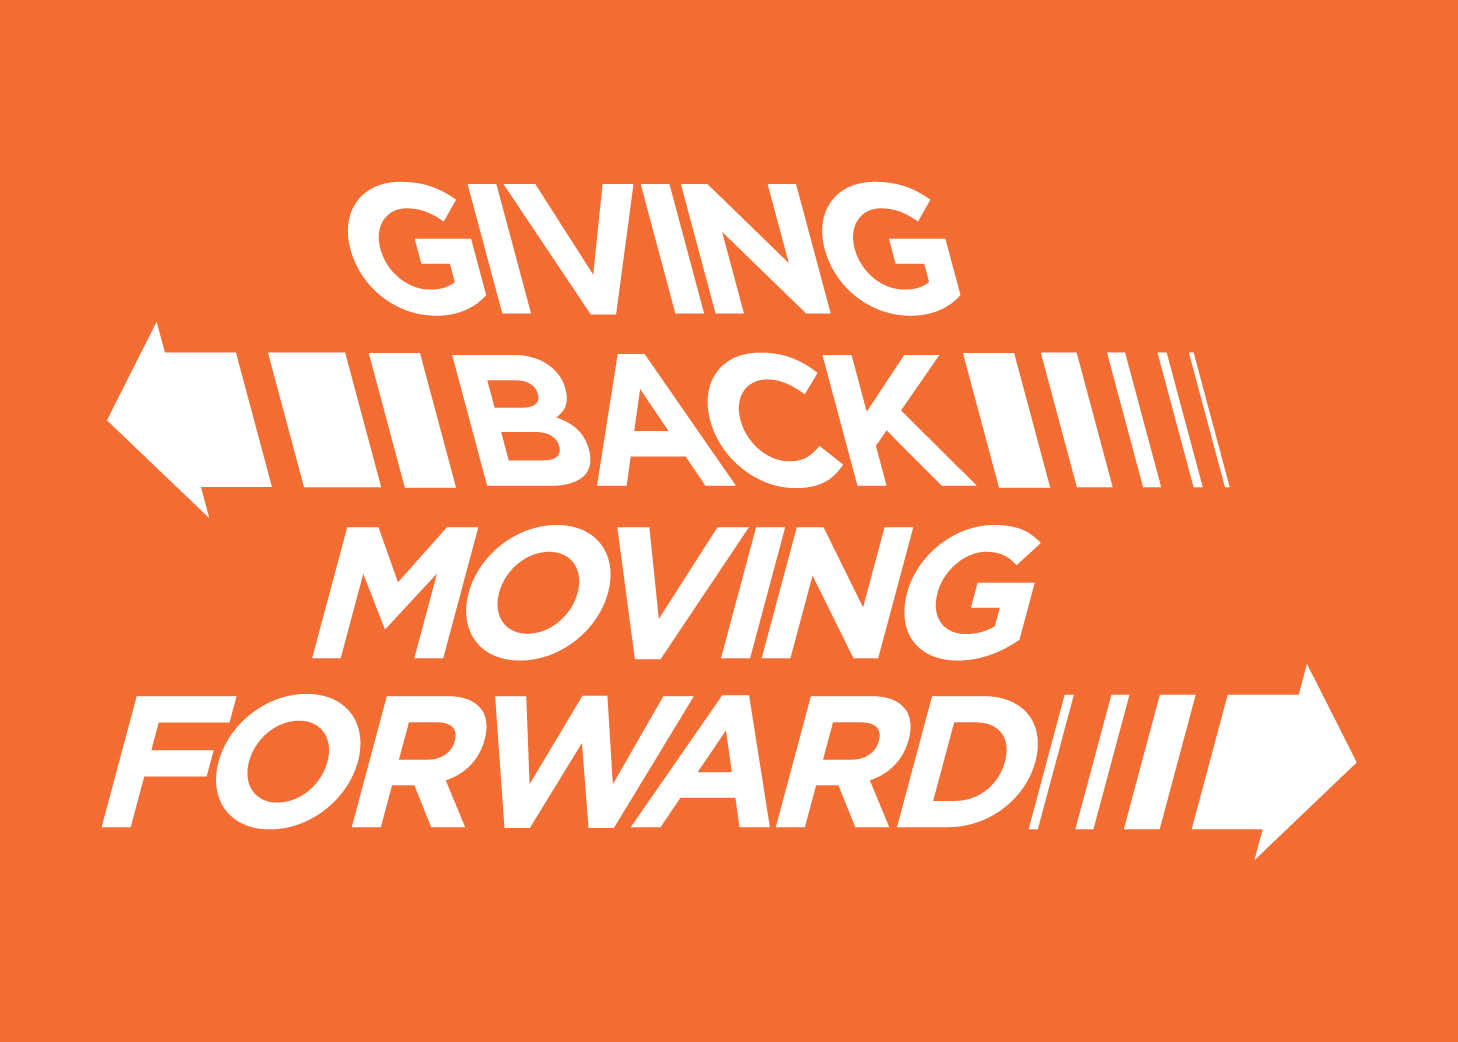 GivingBack_MovingForward_350x250px2 - Website